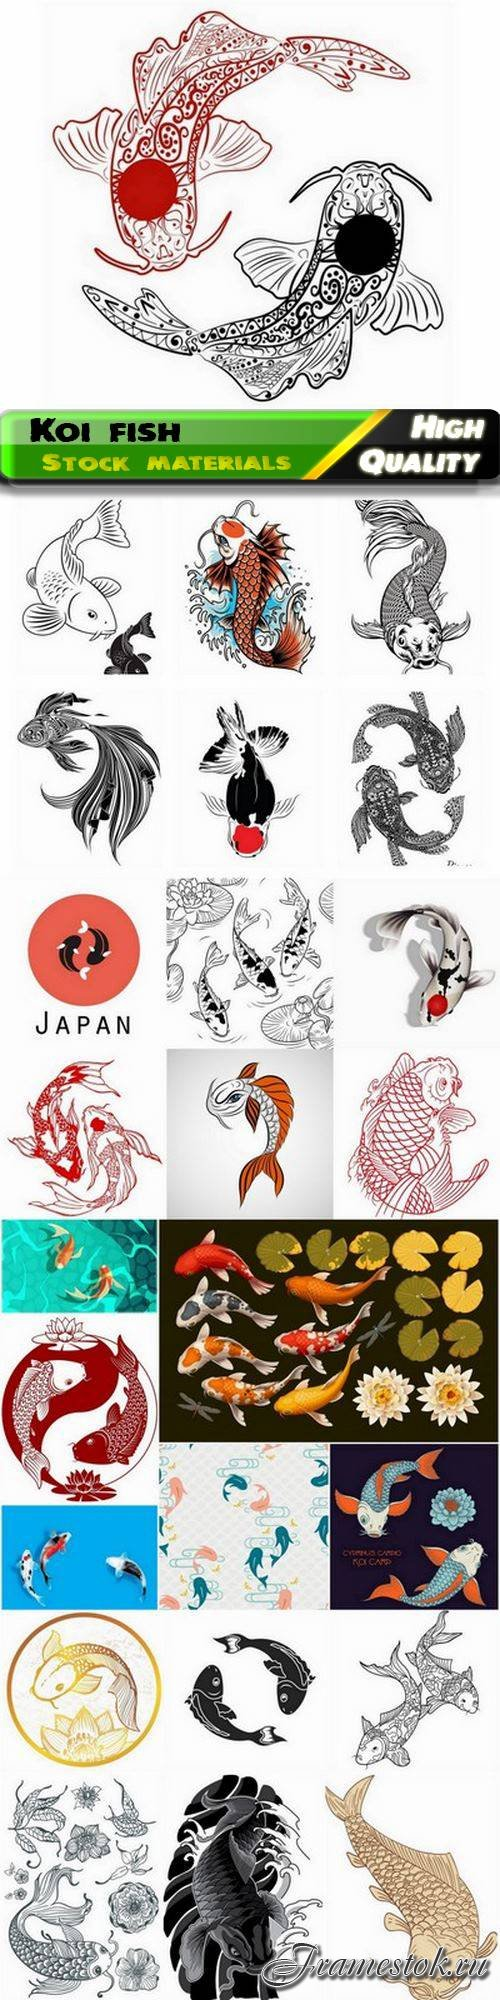 Decorative koi fish and brocade carp animals of japan 25 Eps